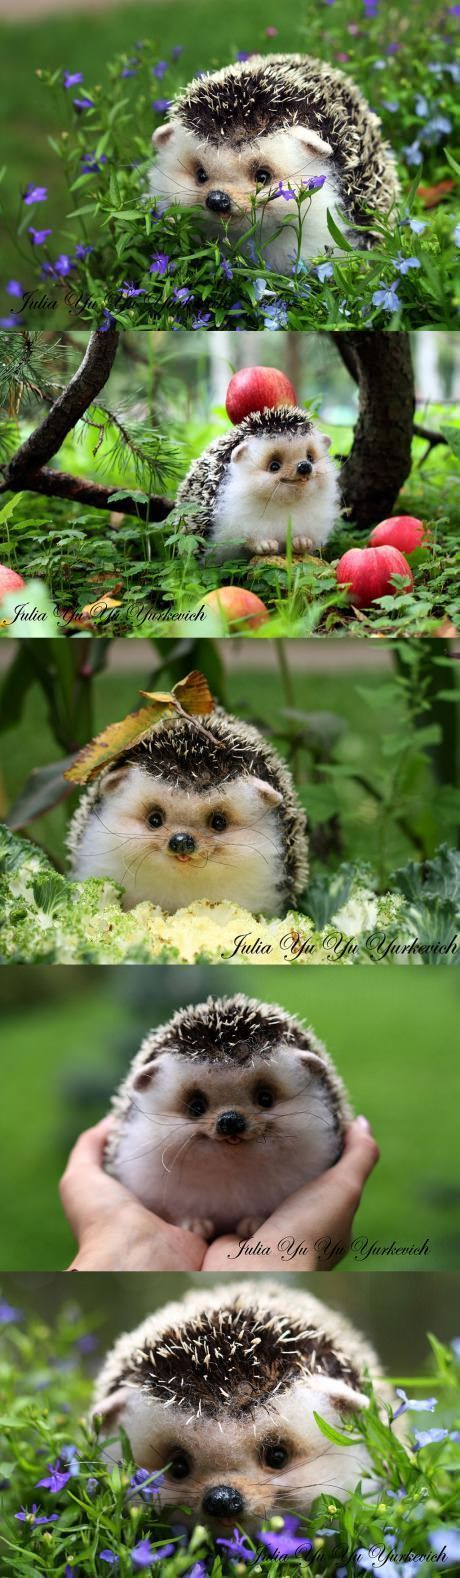 OMG this hedgehog is literally smiling.....that is probably the cutest thing I've ever seen!